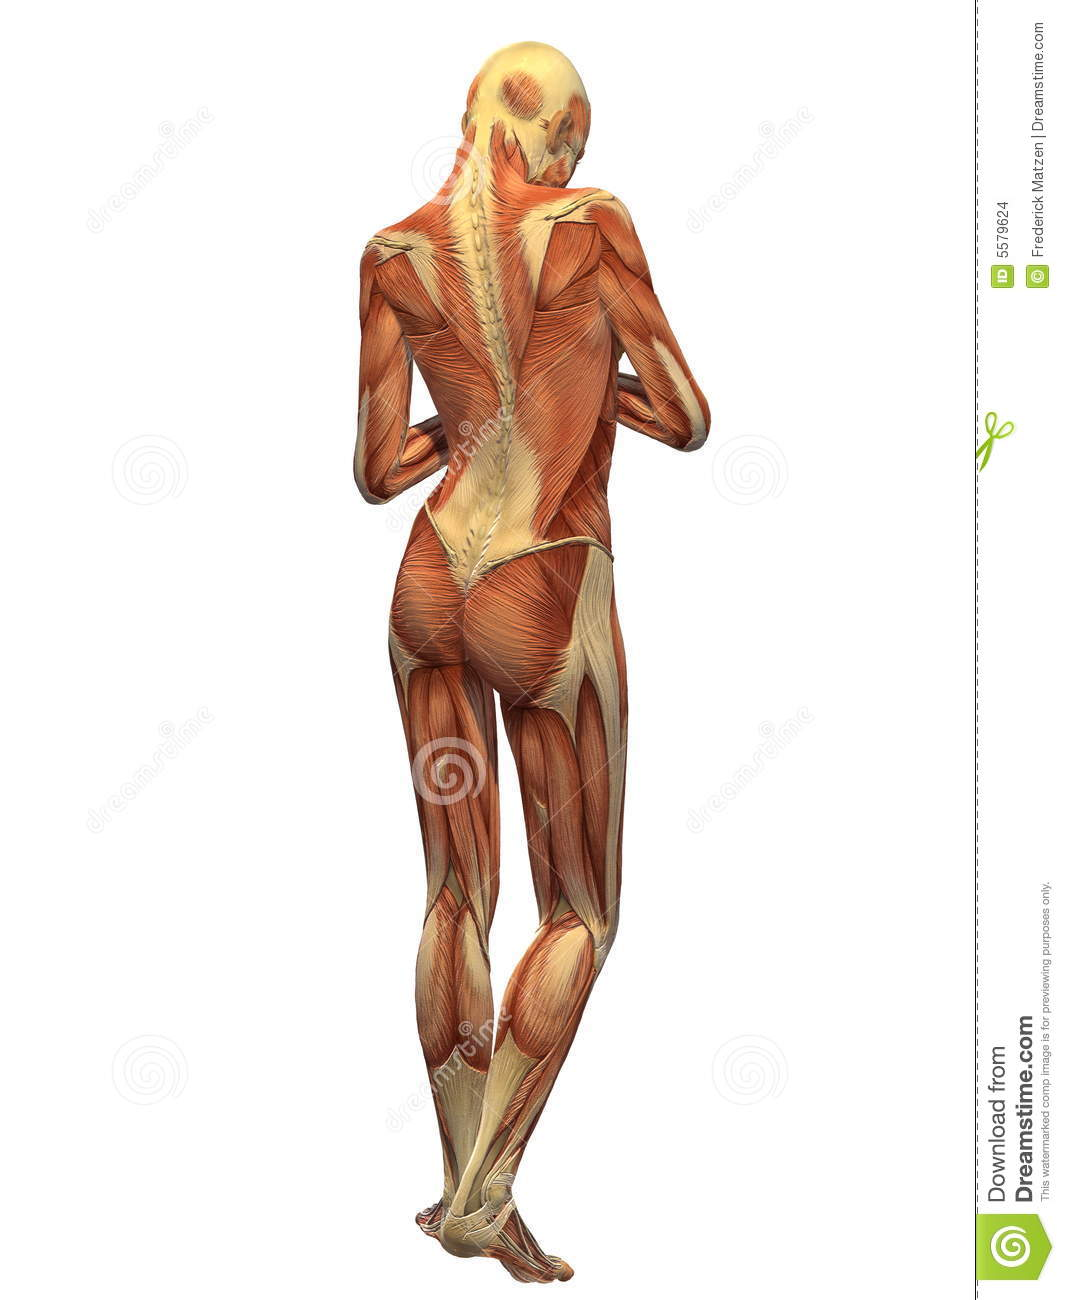 Human Body Muscle - Female Back Stock Illustration - Illustration of ...